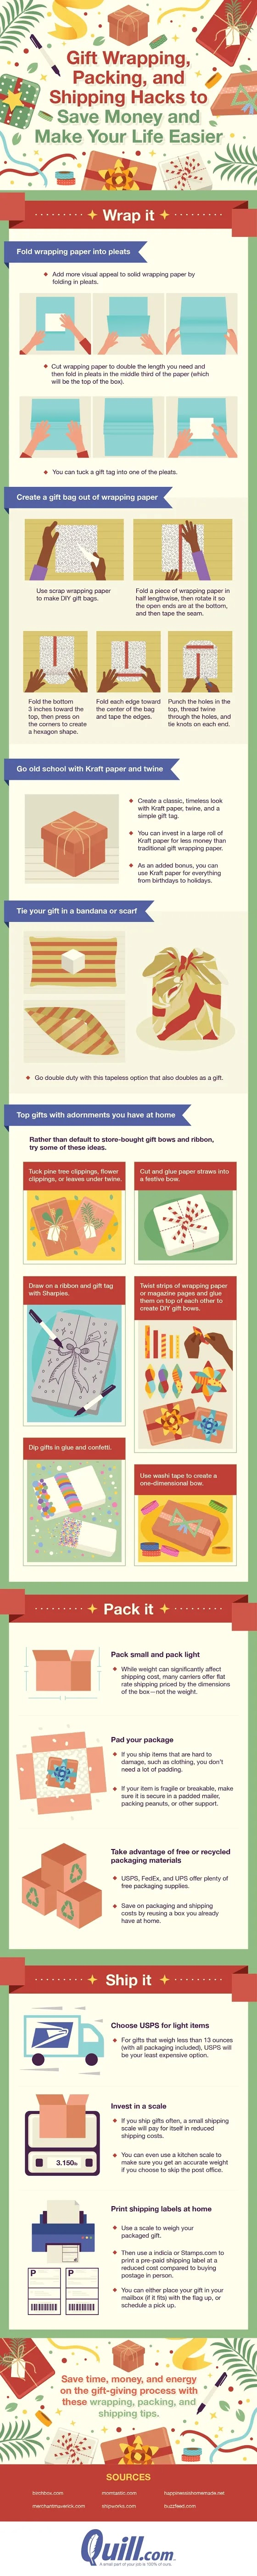 This Is How to Wrap Your Gifts Like a Pro [infographic]